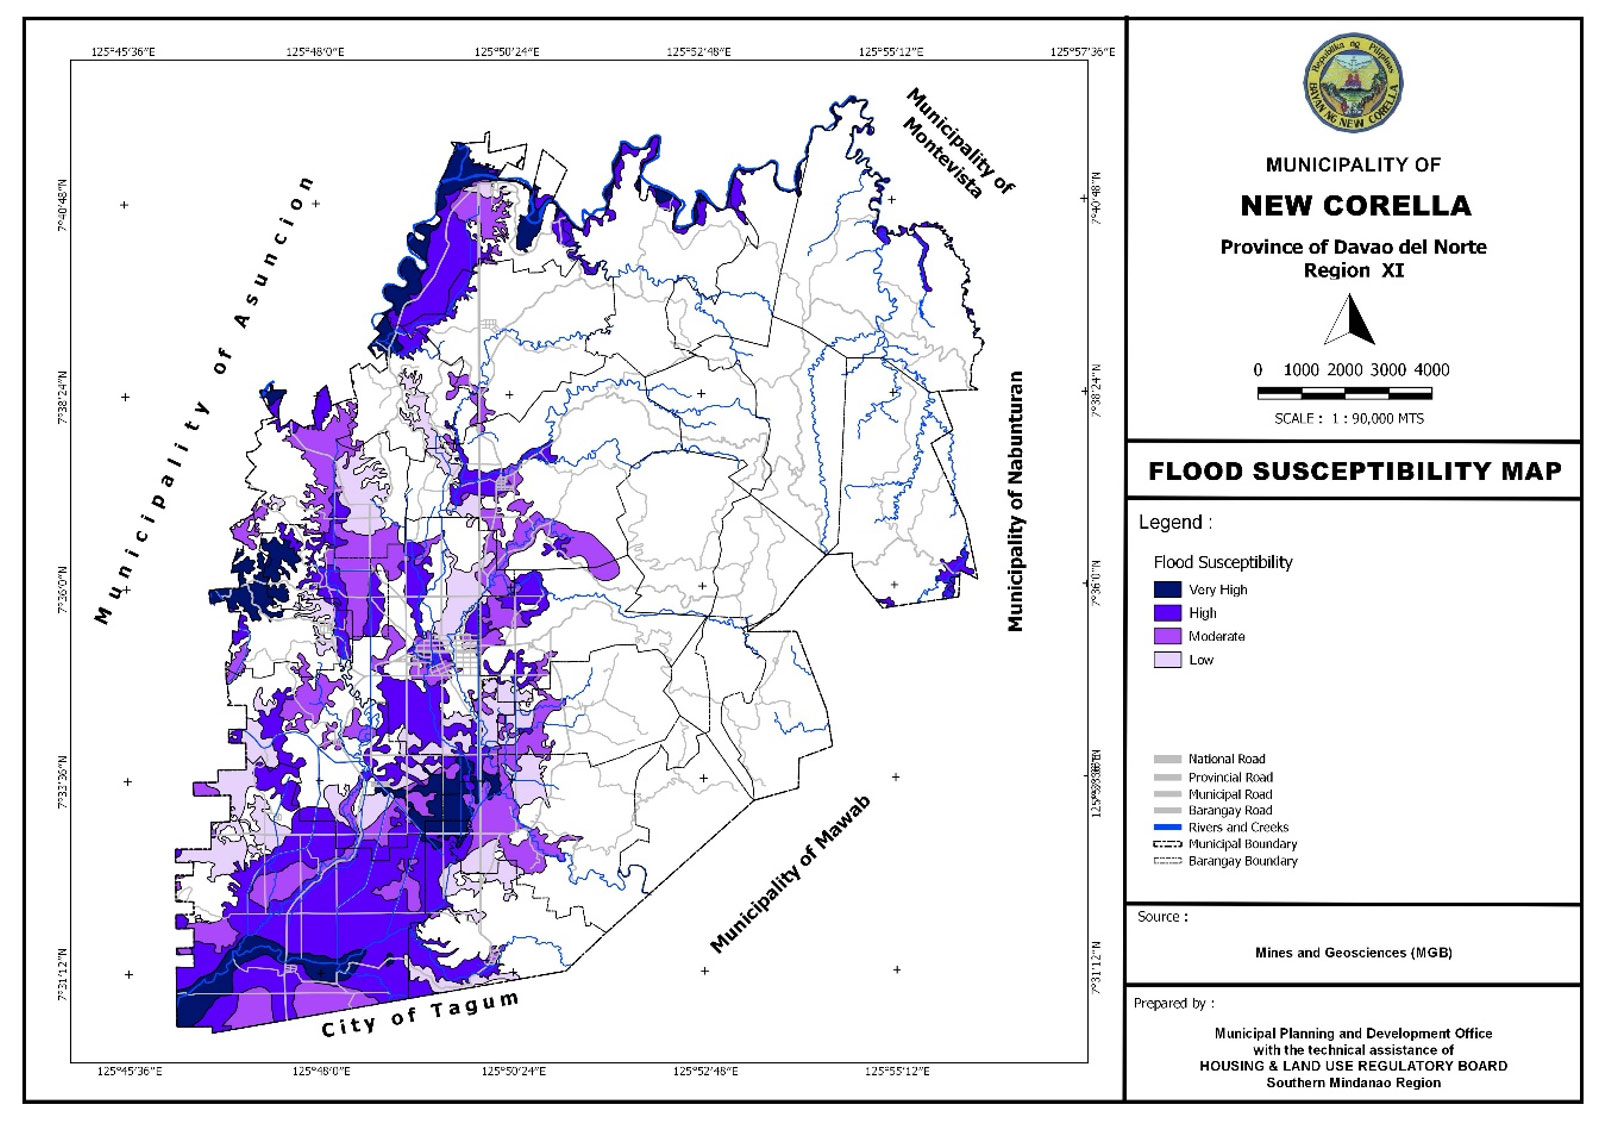 Flood Susceptibility Map